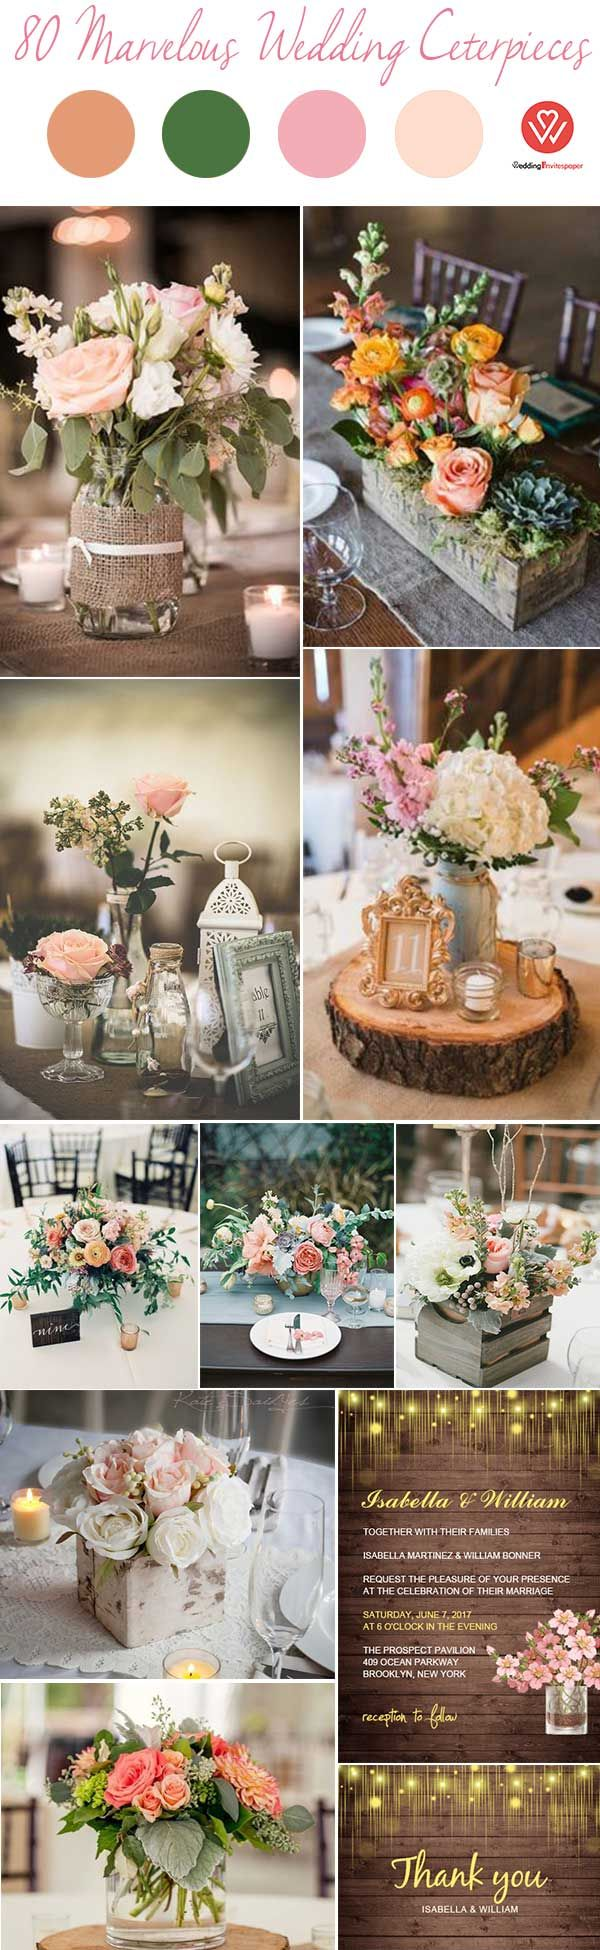 marvelous diy rustic u cheap wedding centerpiece ideas wedding